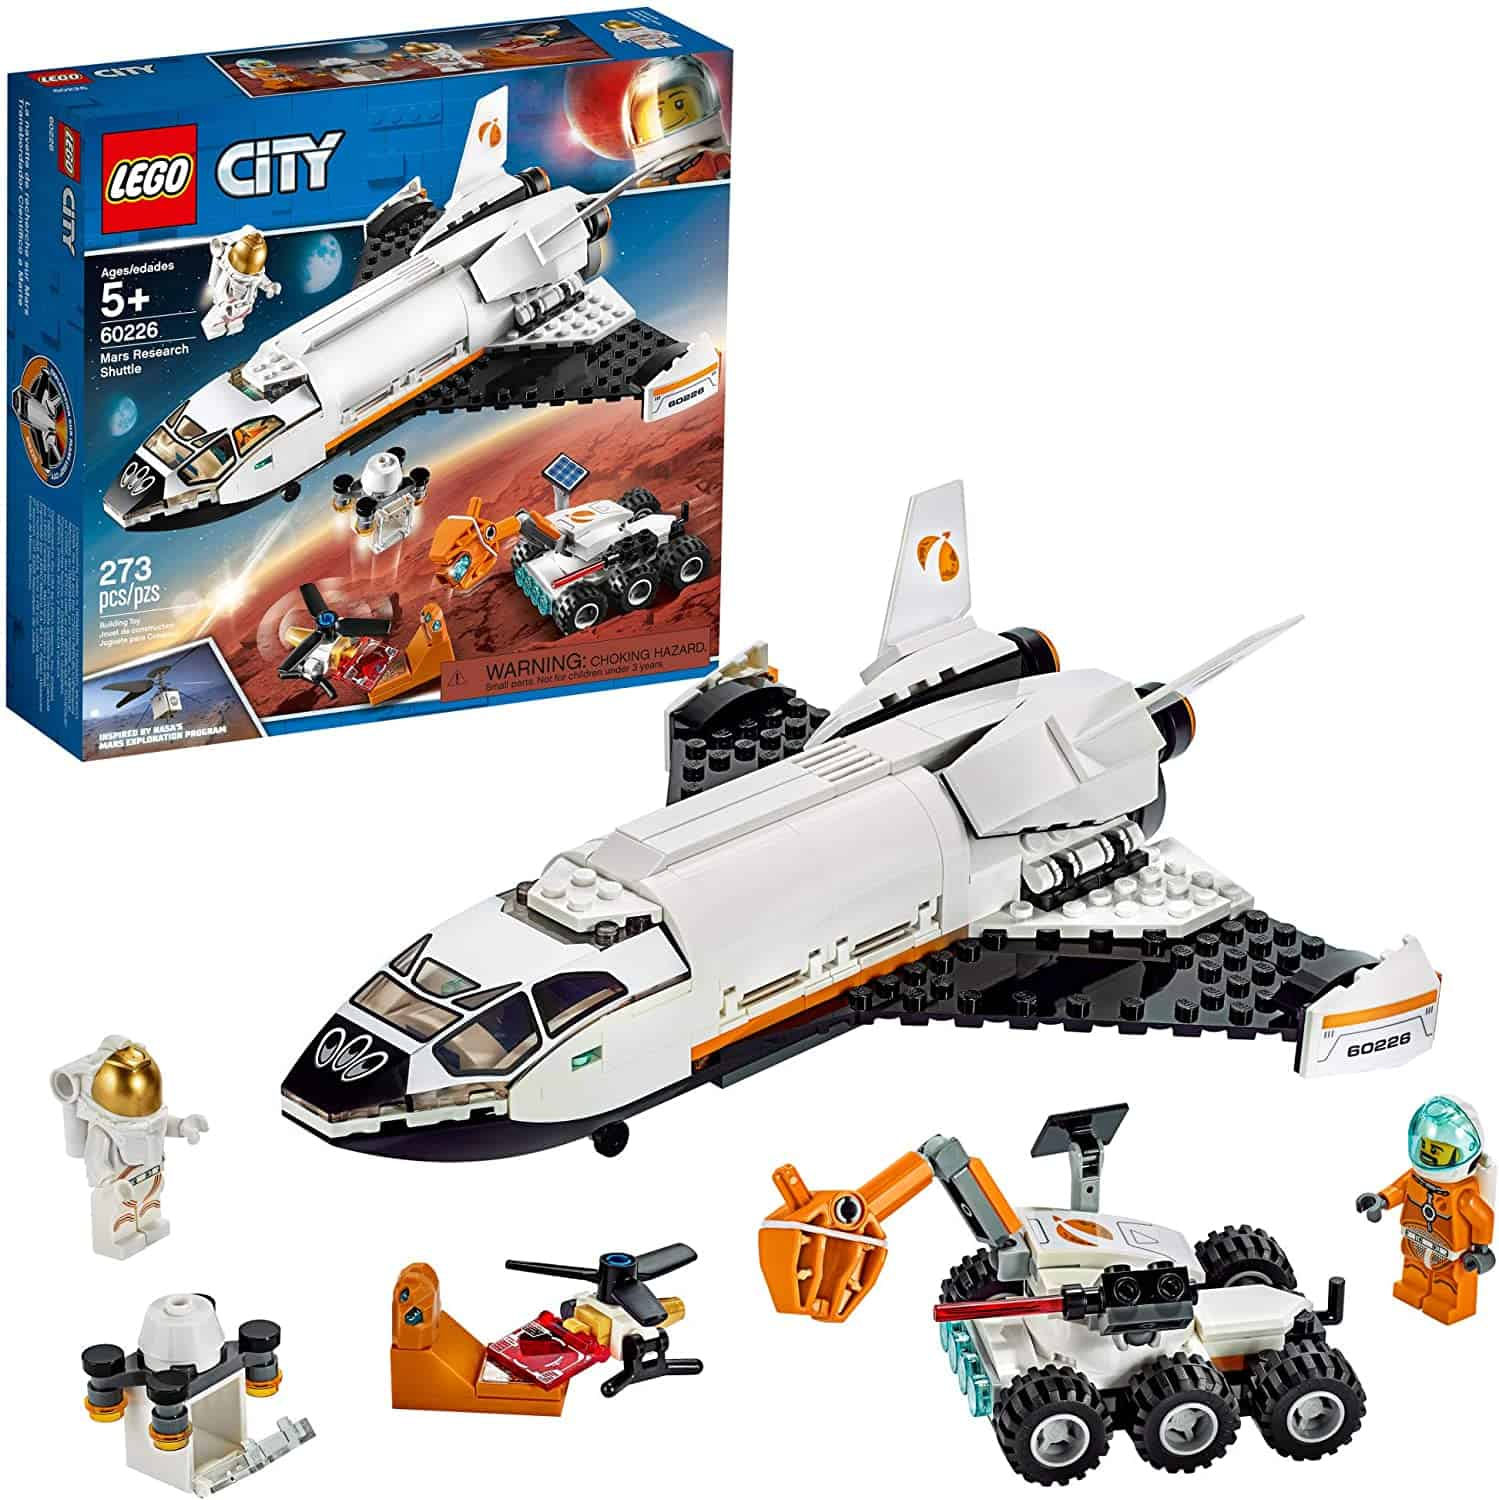 LEGO City Space Mars Research Shuttle 60226 Space Shuttle Toy Building Kit